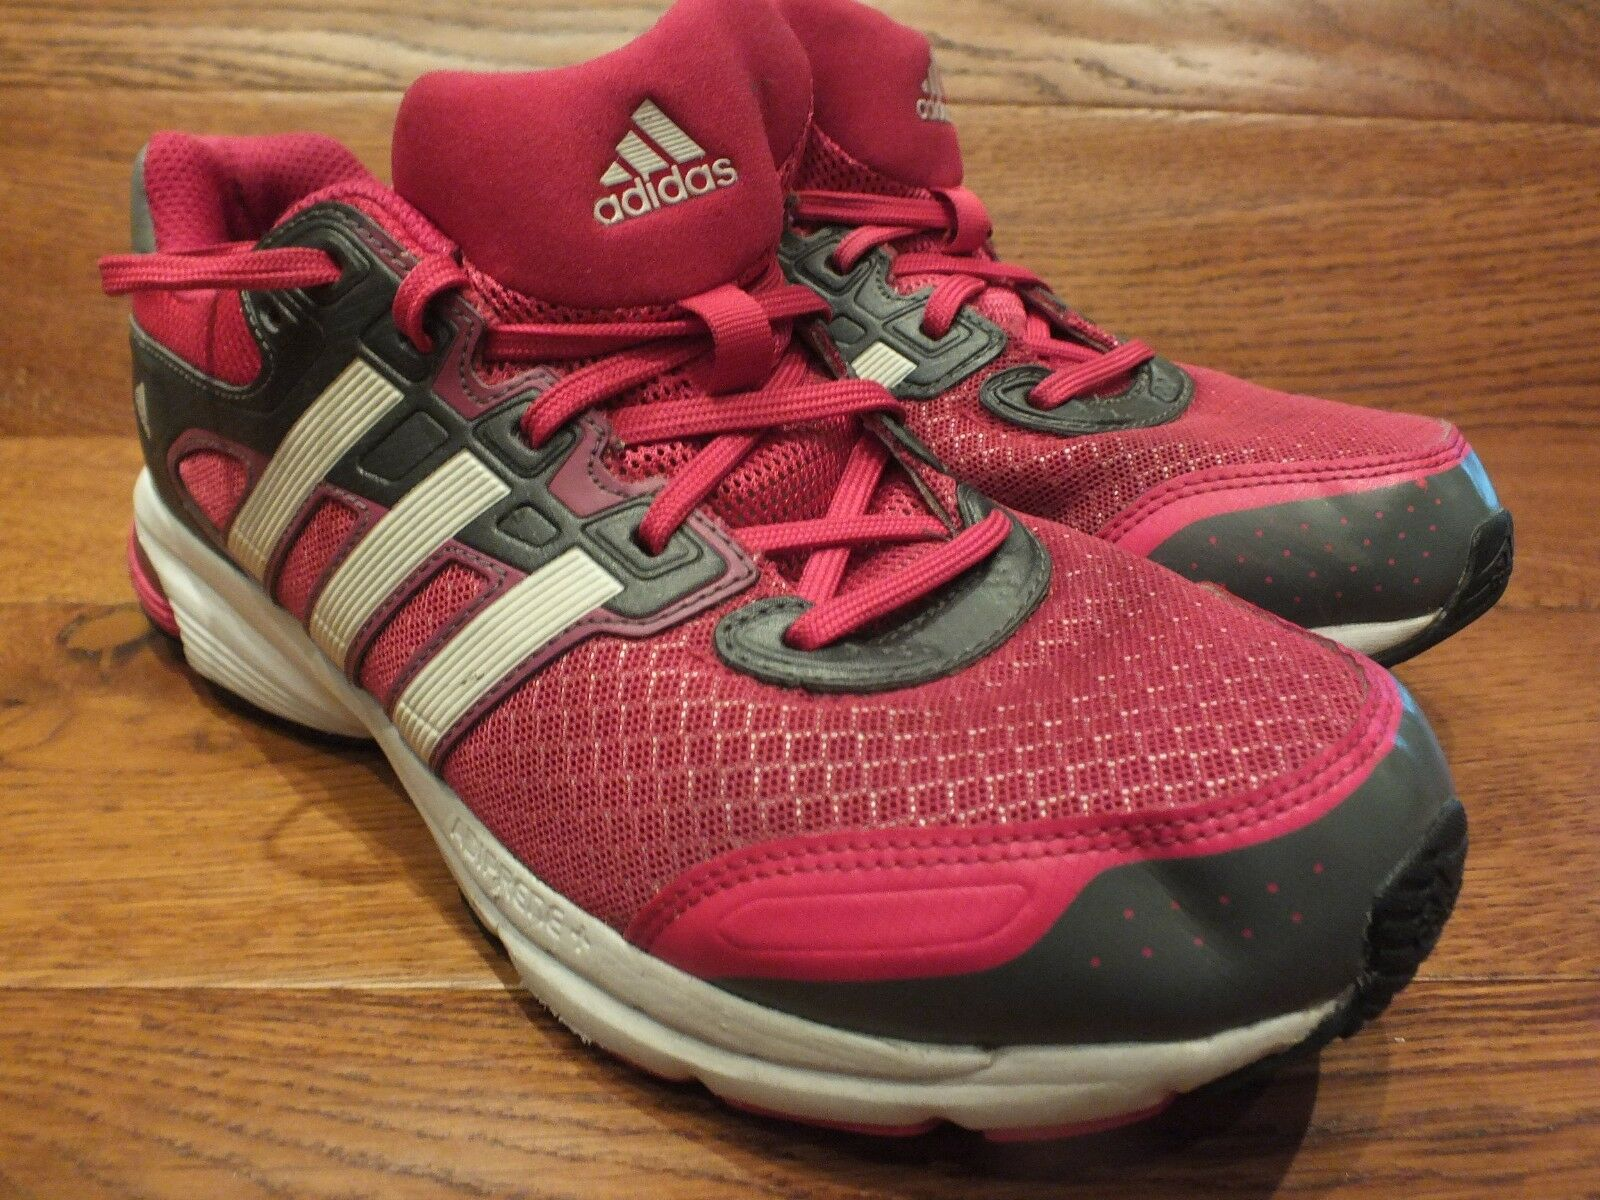 Adidas Lightster Stability Running shoes Casual Trainers